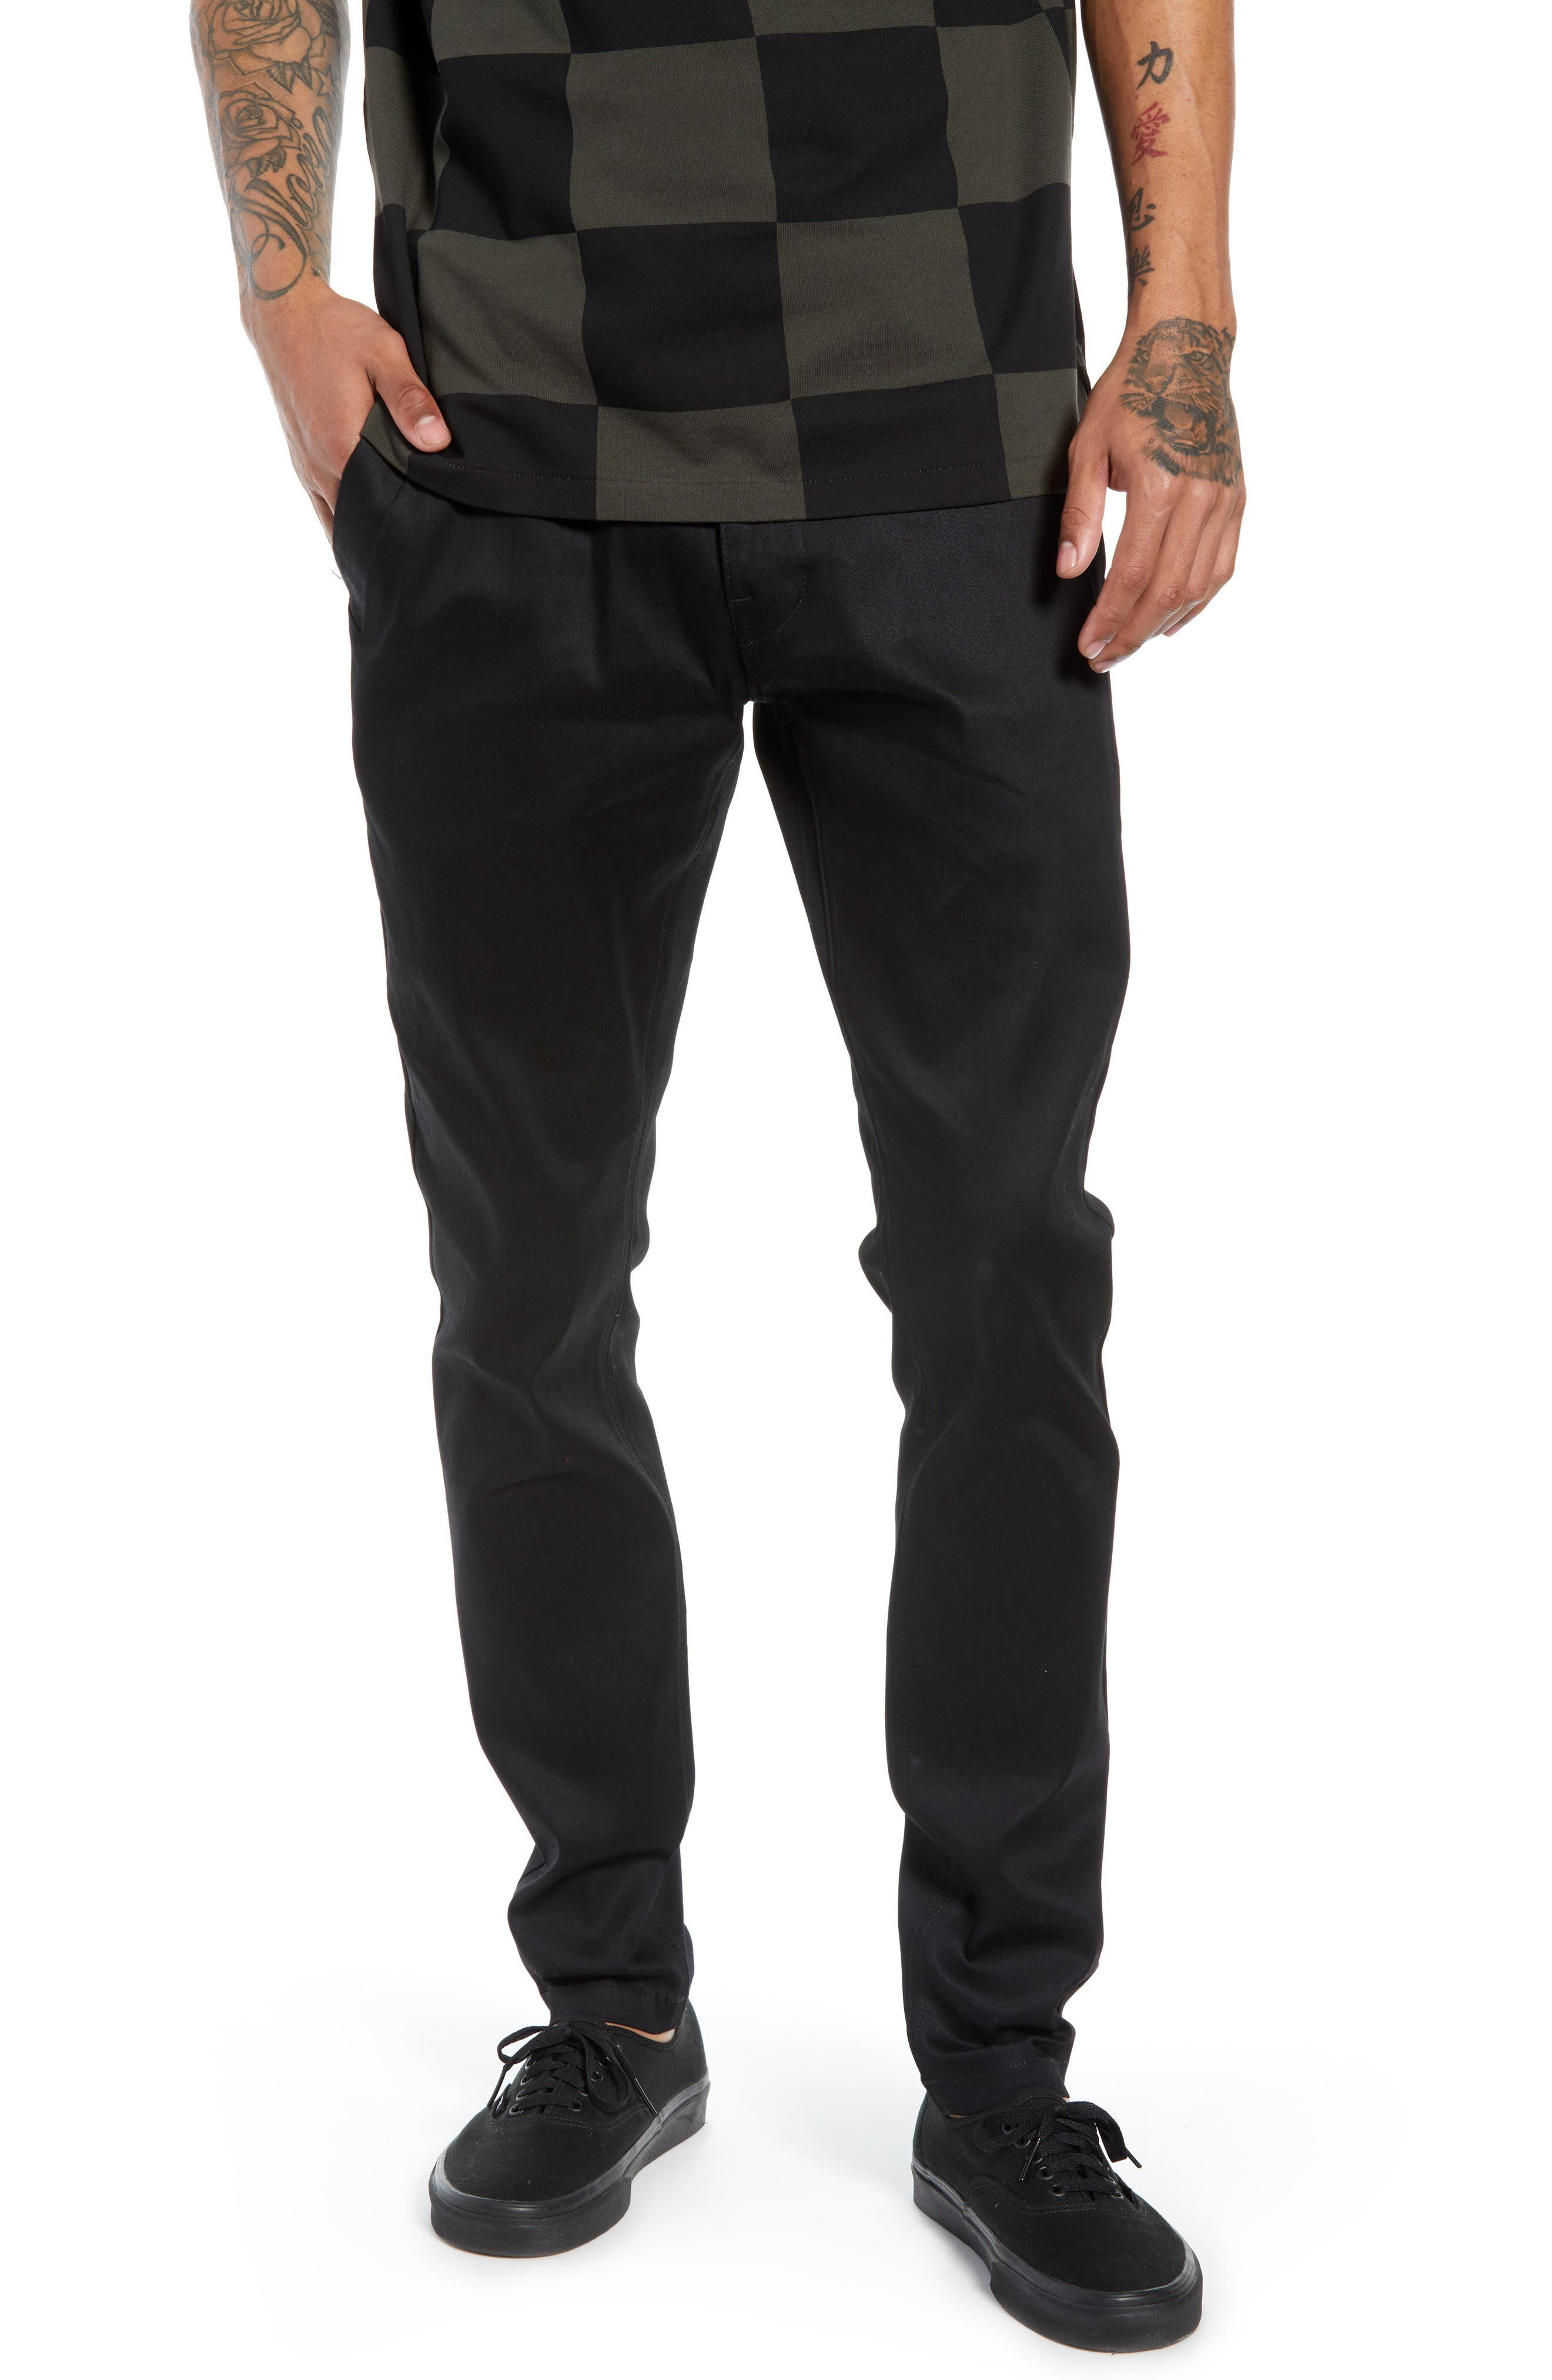 Bronson Cilex Skinny Fit Chinos,                         Main,                         color, RAW DENIM